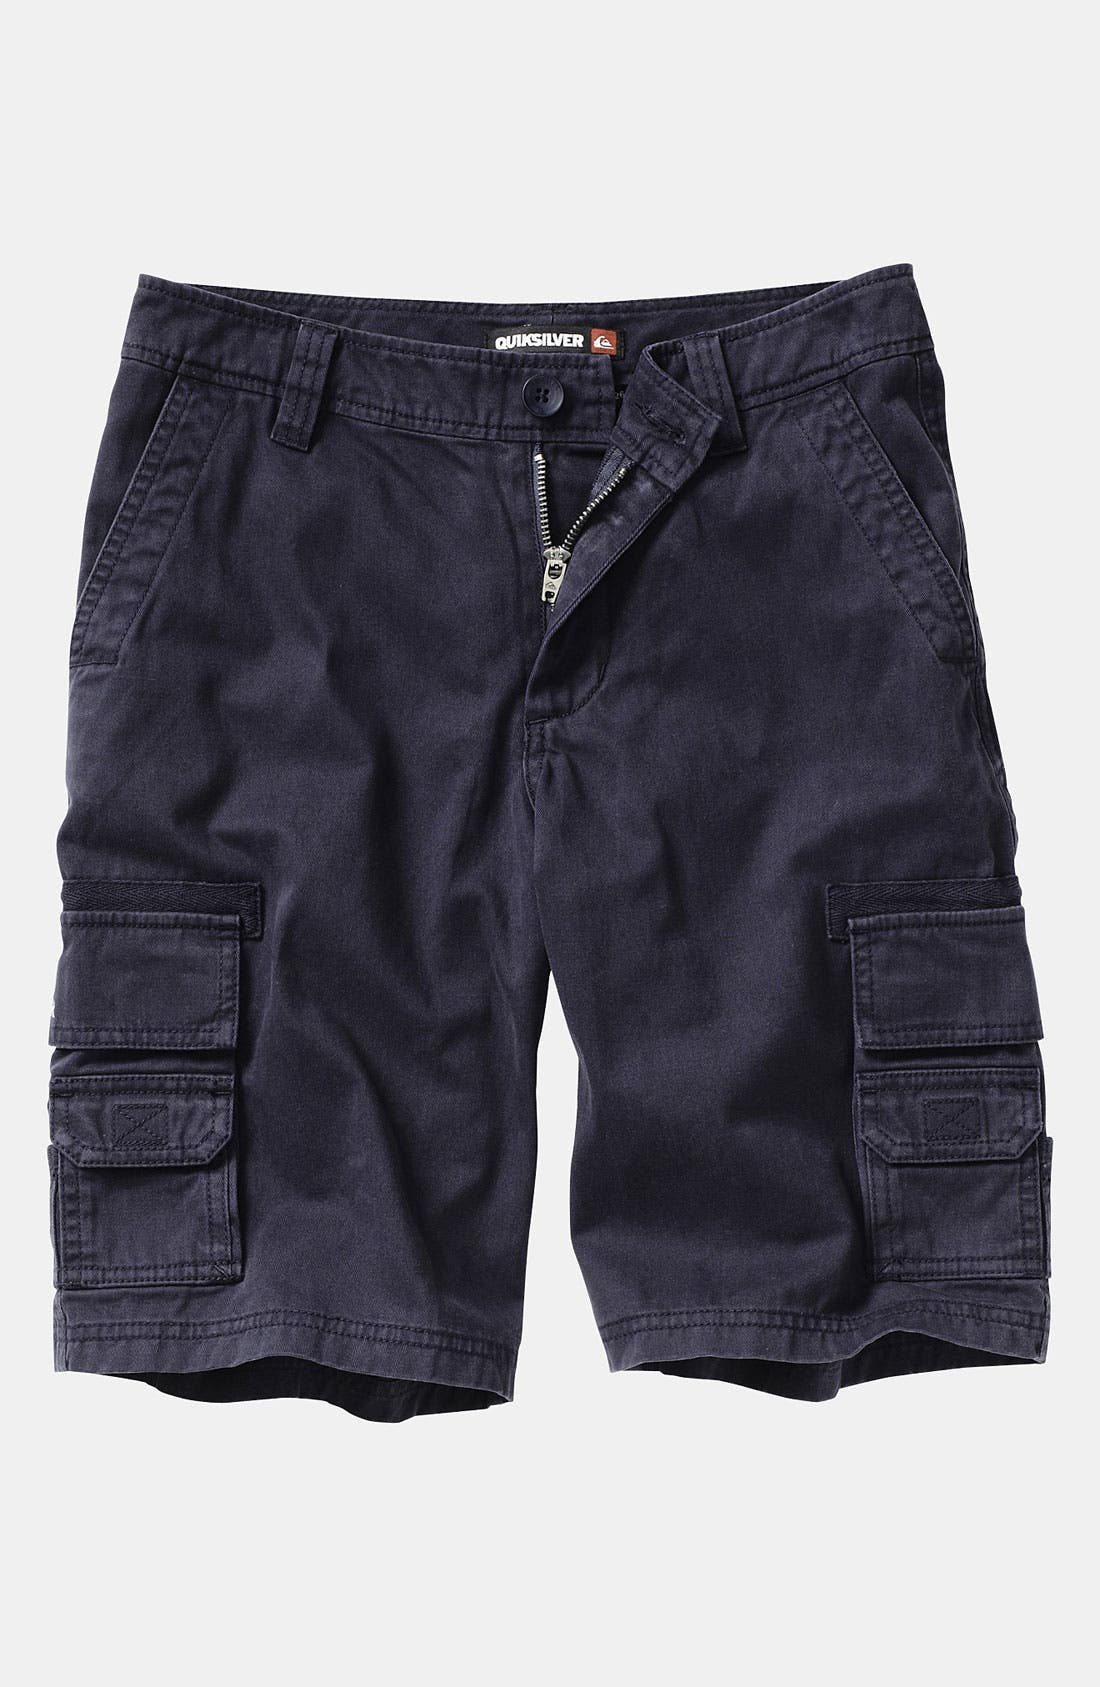 Alternate Image 1 Selected - Quiksilver 'Escargot' Cargo Shorts (Infant)